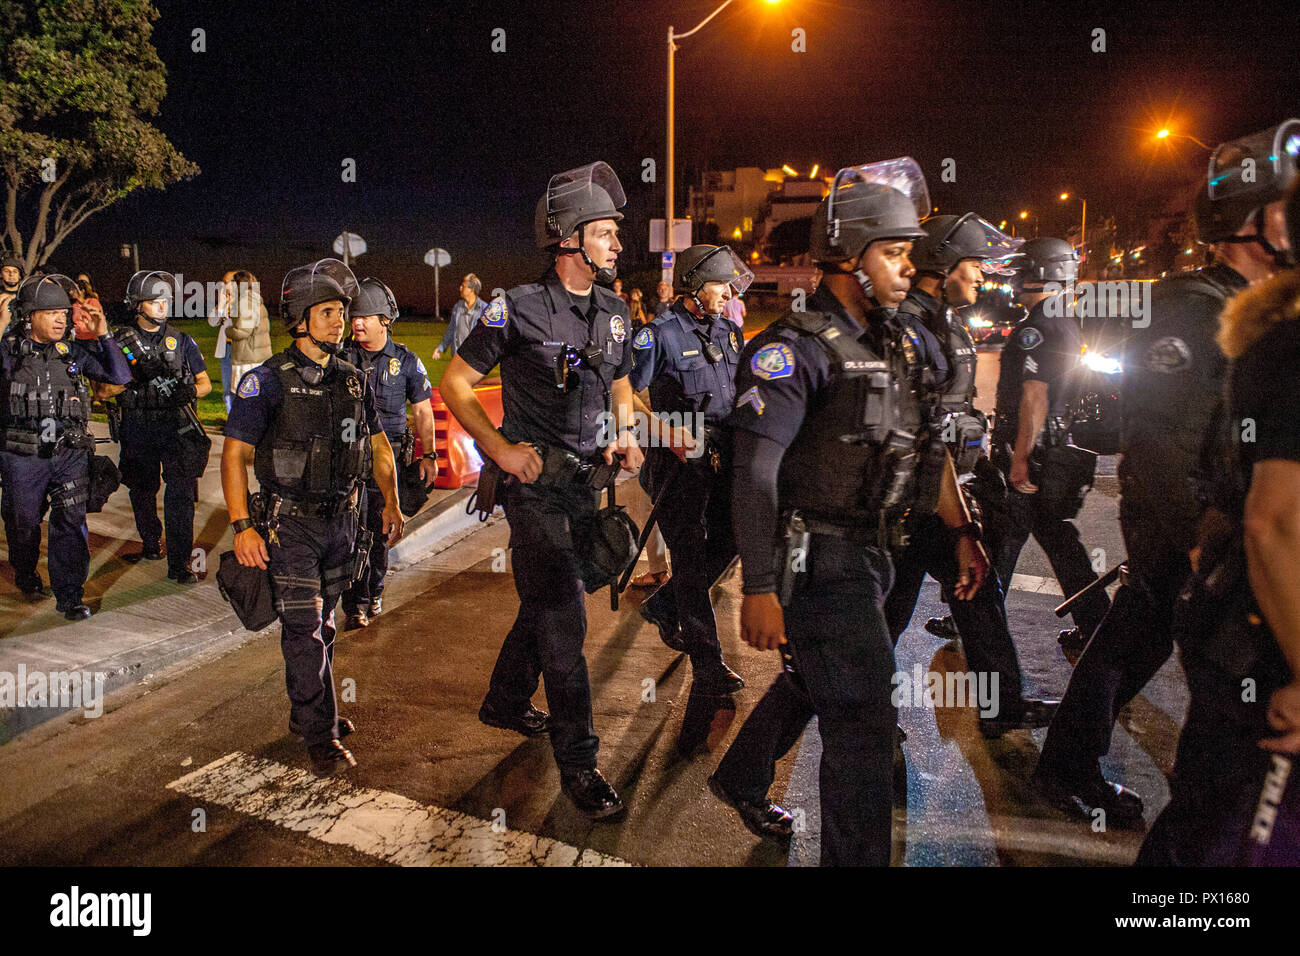 Laguna Beach police in hard hats arrive at a right-wing demonstration at the city's Main Beach. - Stock Image